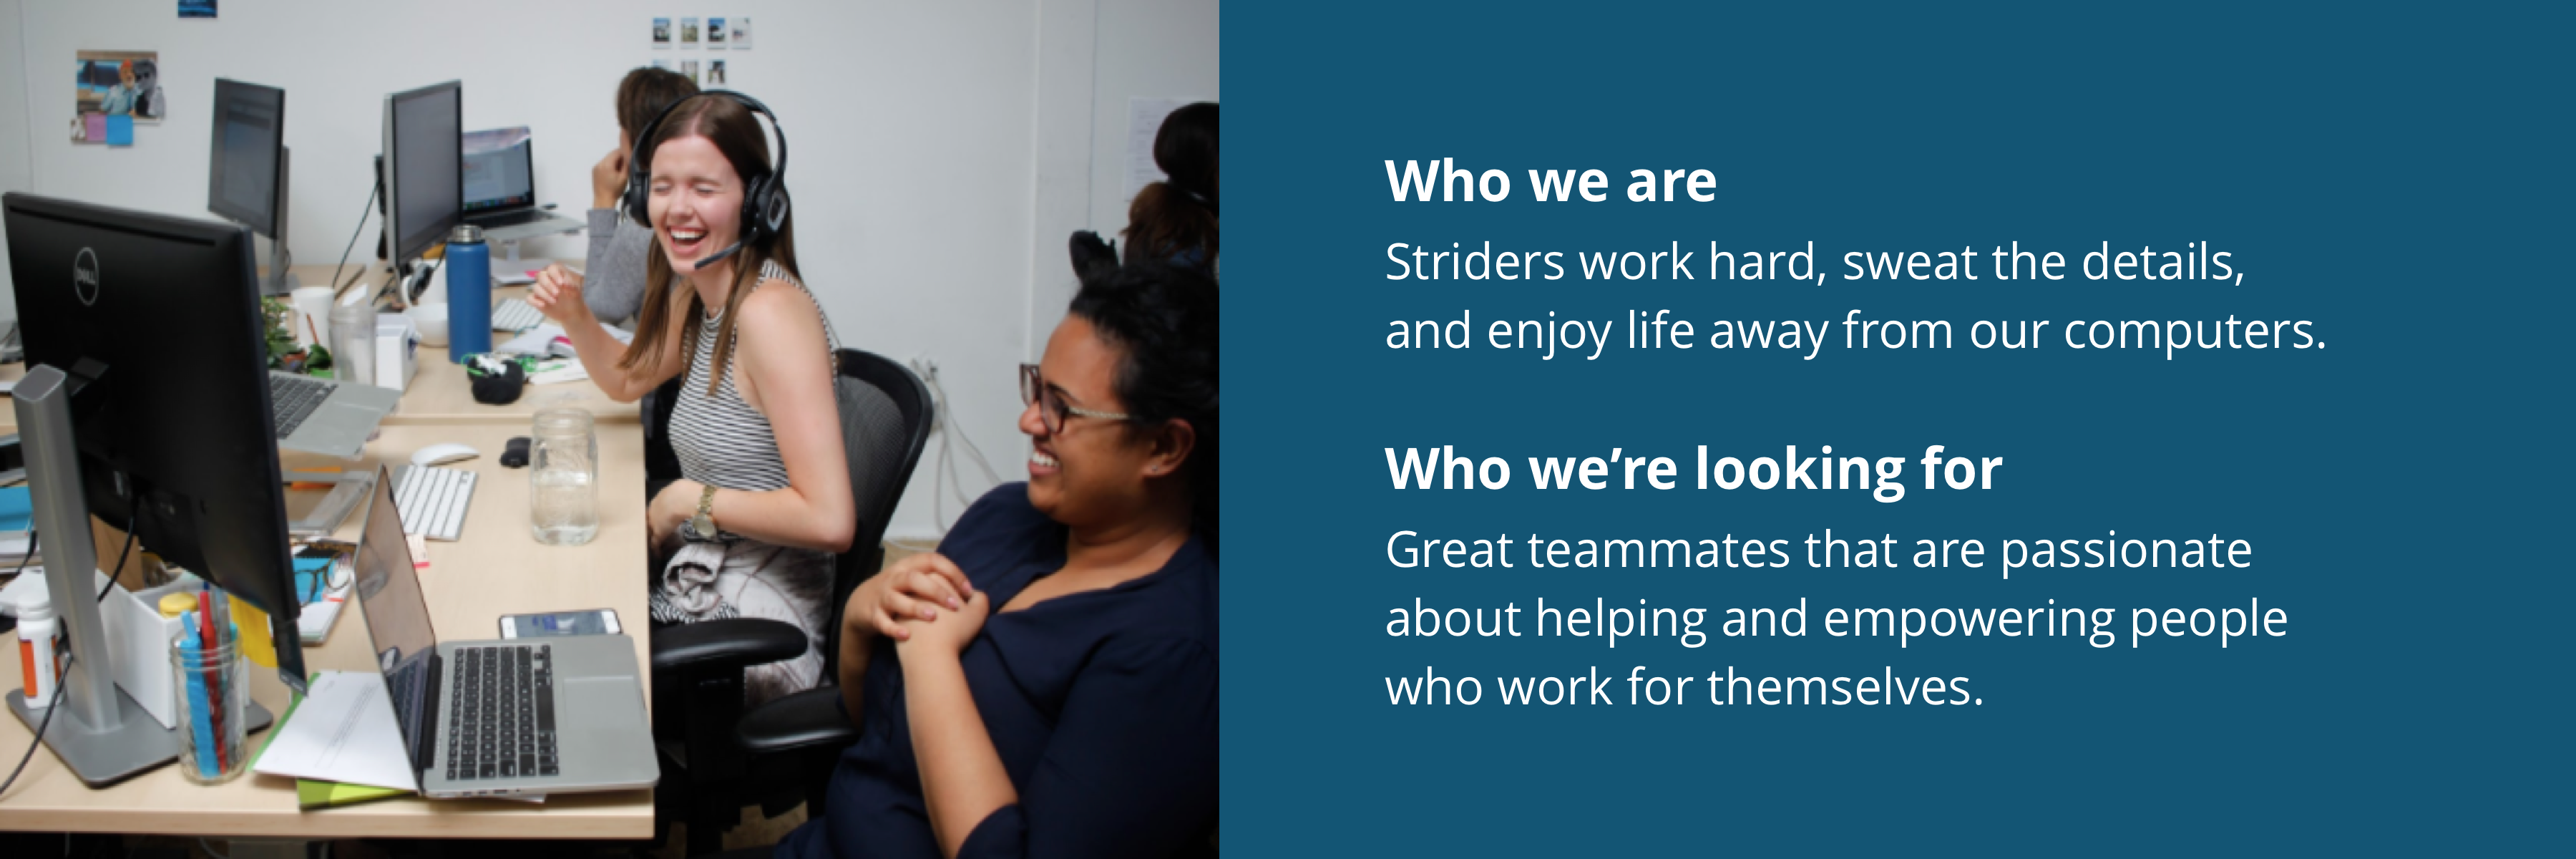 Who we are:Striders work hard, sweat the details, and enjoy life away from our computers.Who we're looking for:Great teammates that are passionate about helping and empowering people who work for themselves.